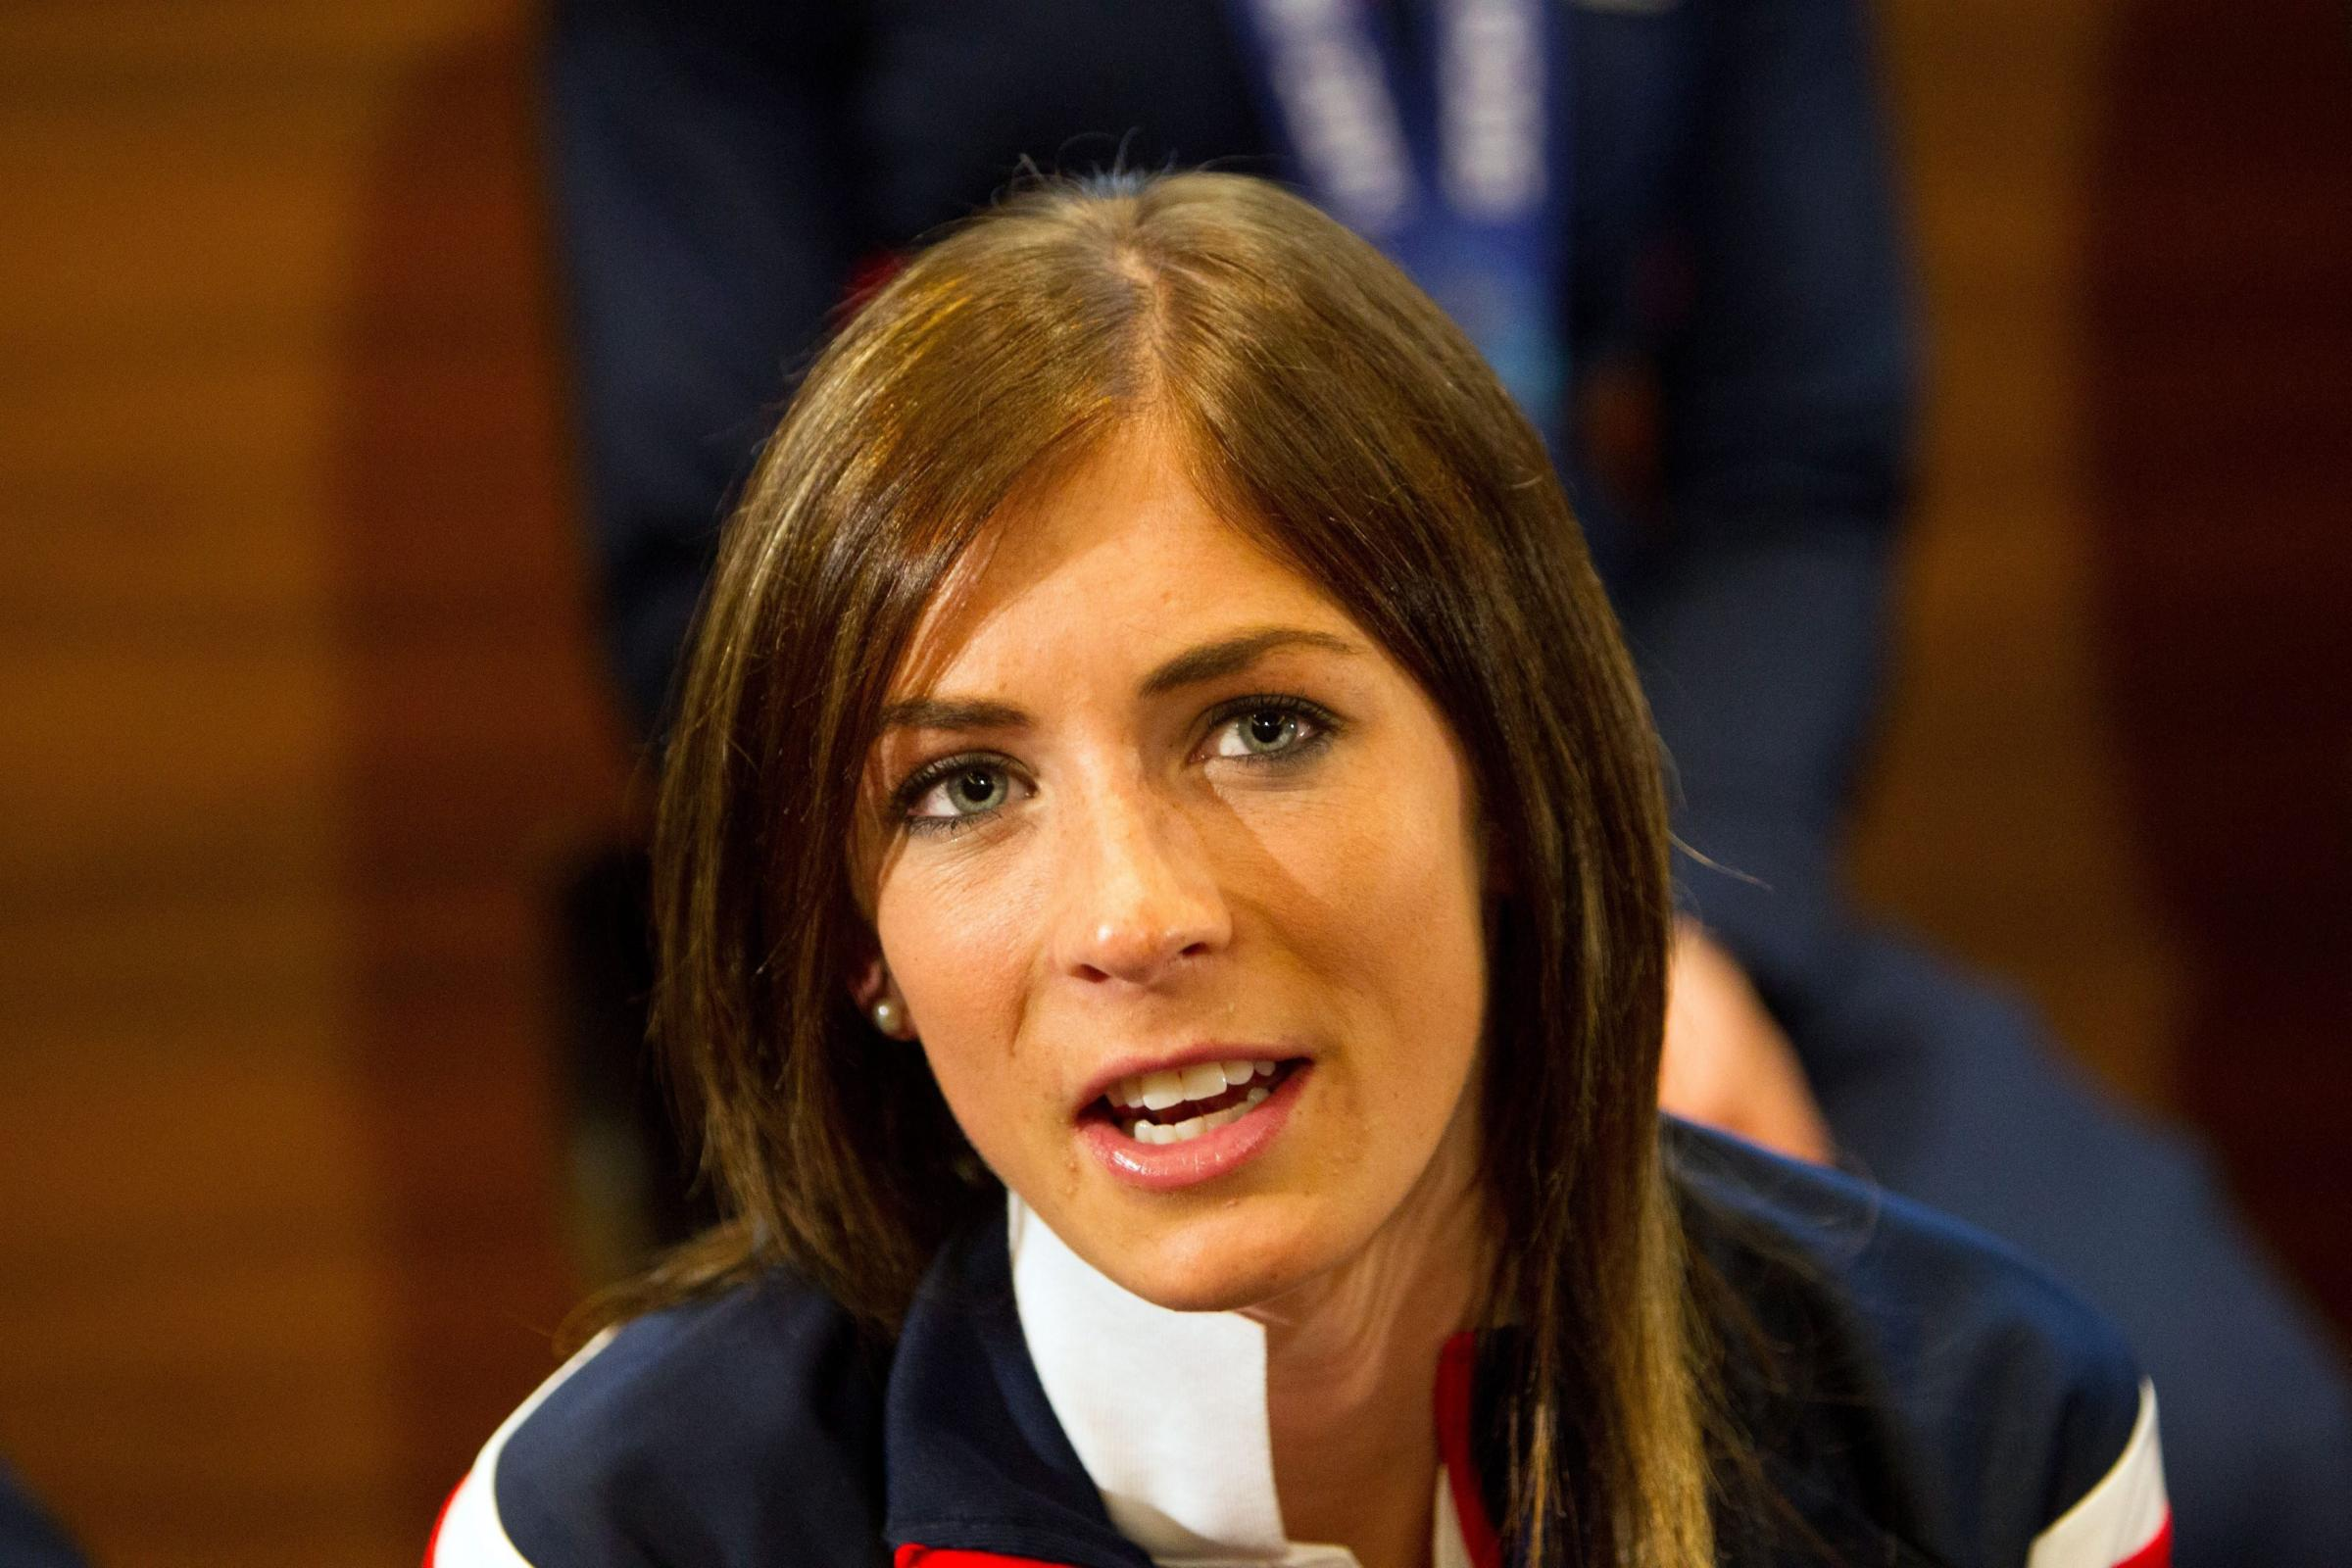 Eve Muirhead is considering options but excited about the up-coming challenge